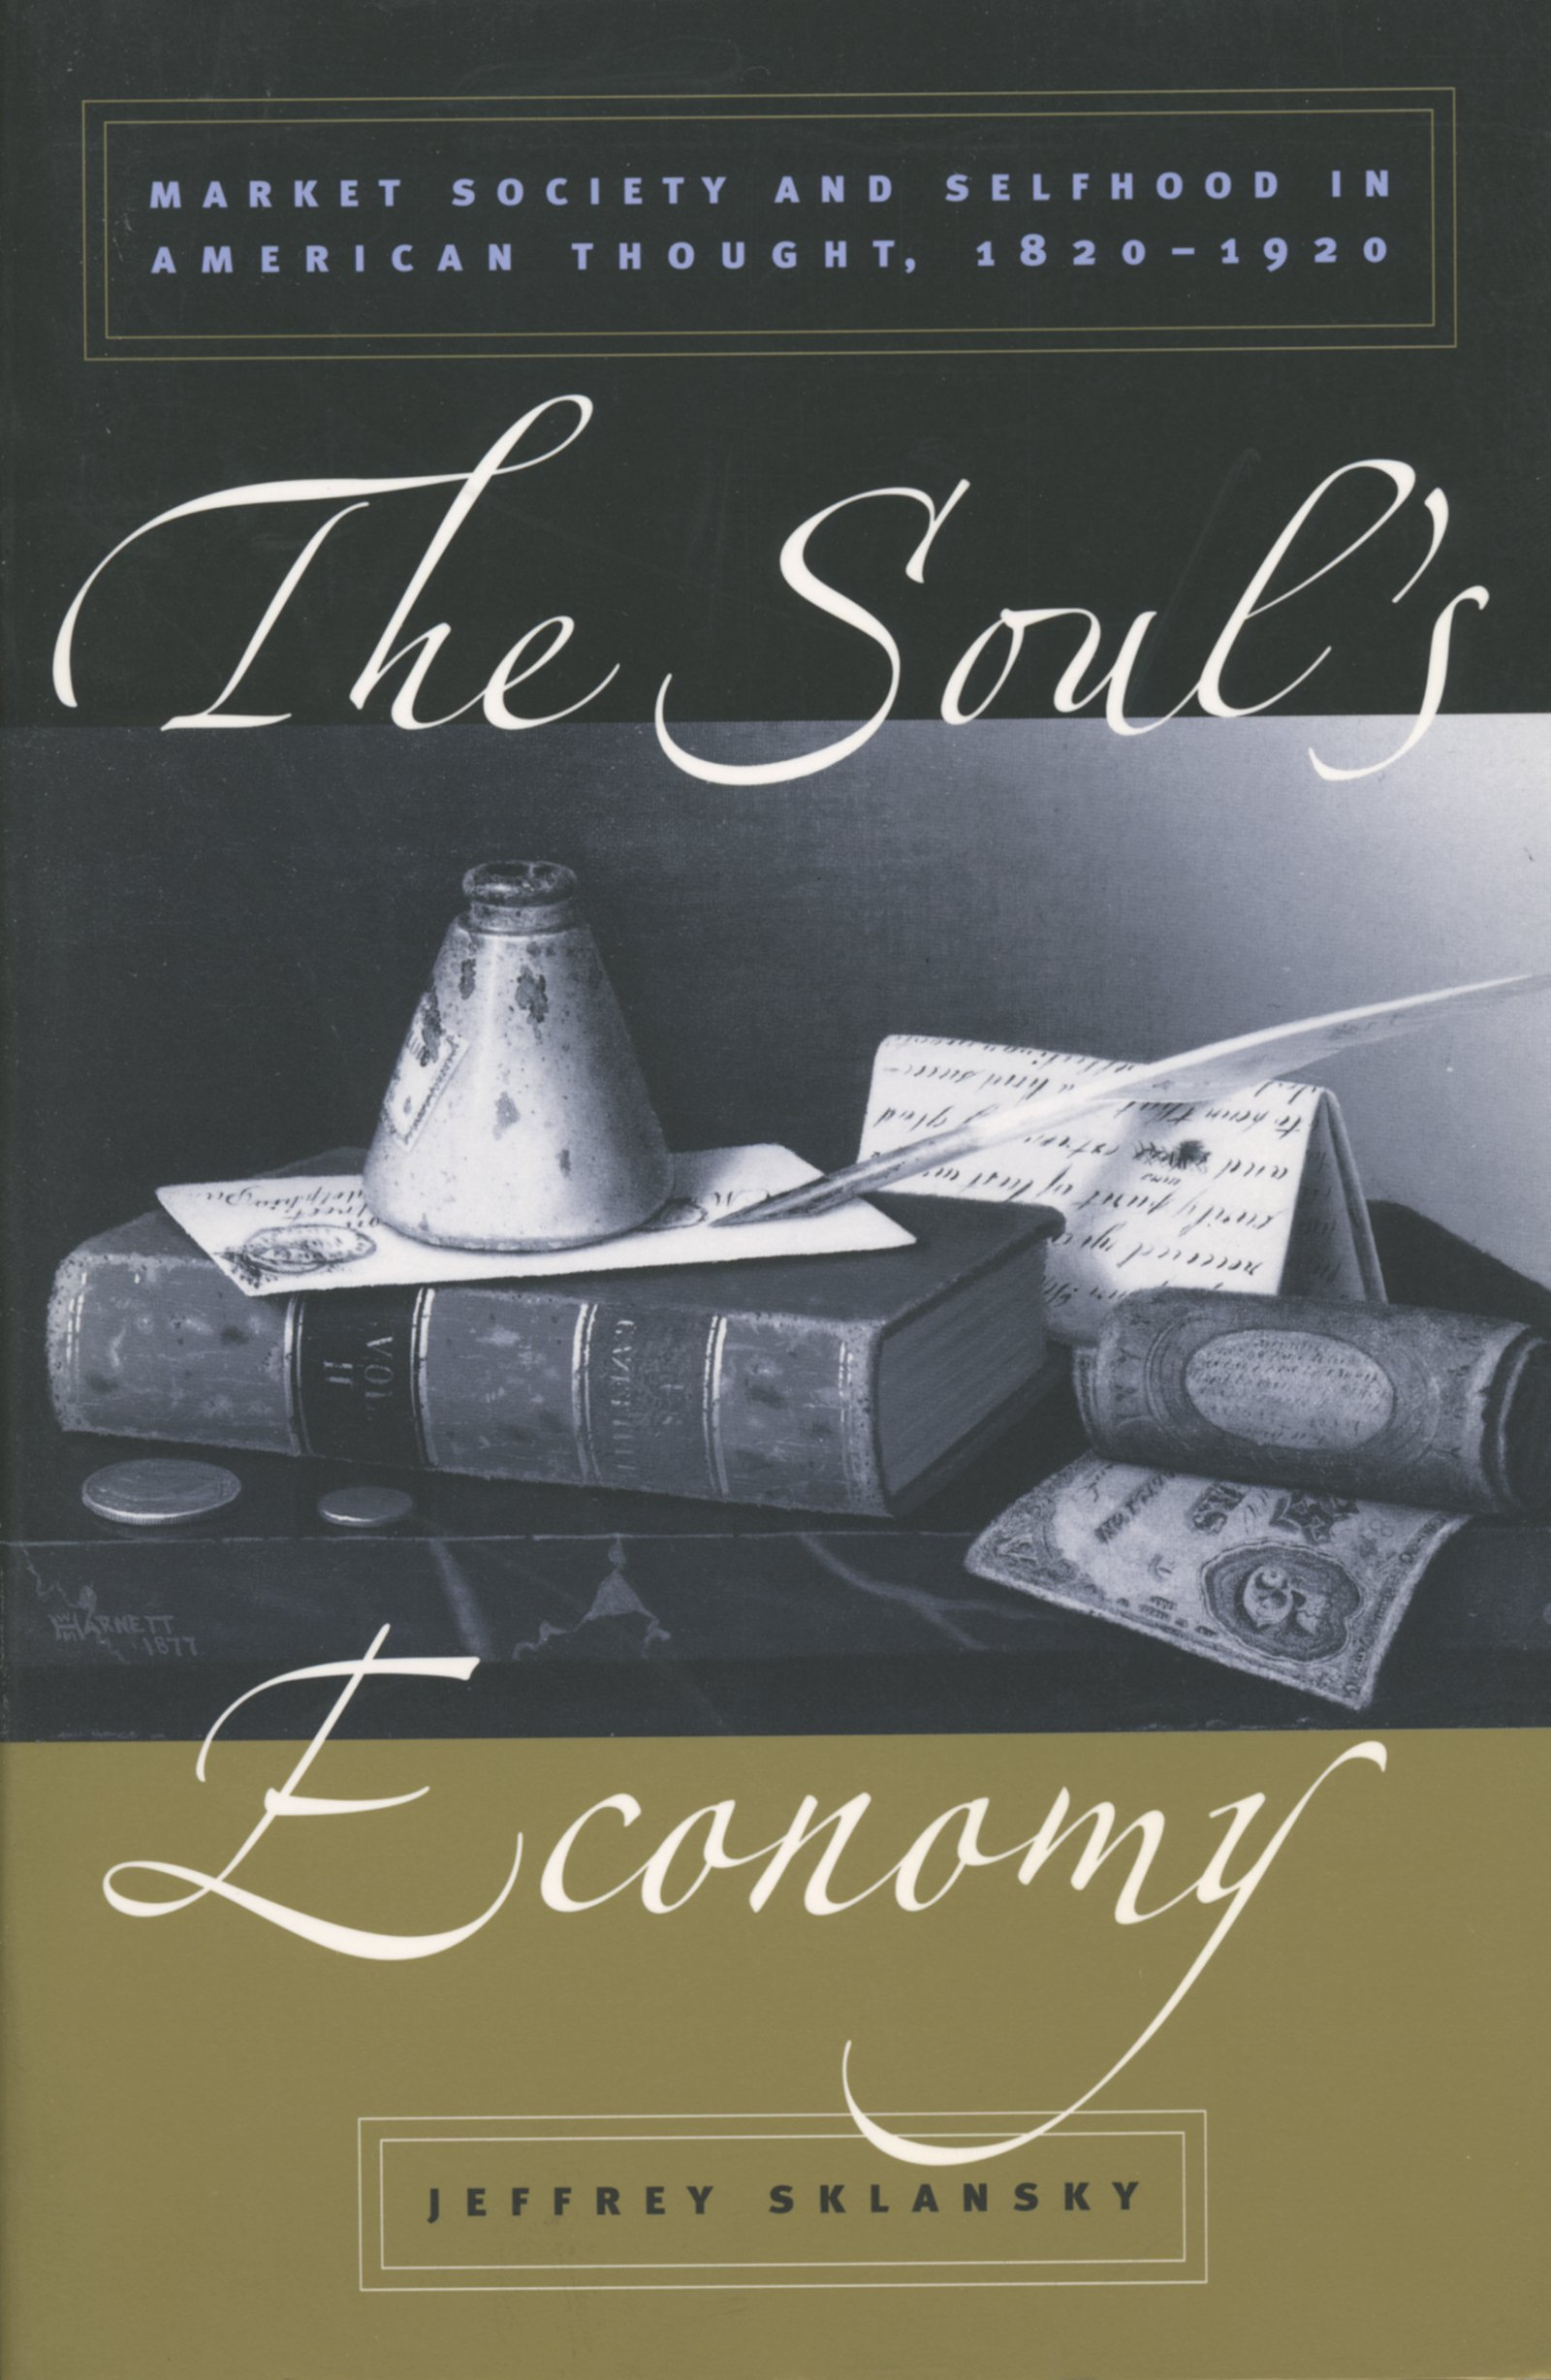 The Soul's Economy: Market Society and Selfhood in American Thought, 1820-1920